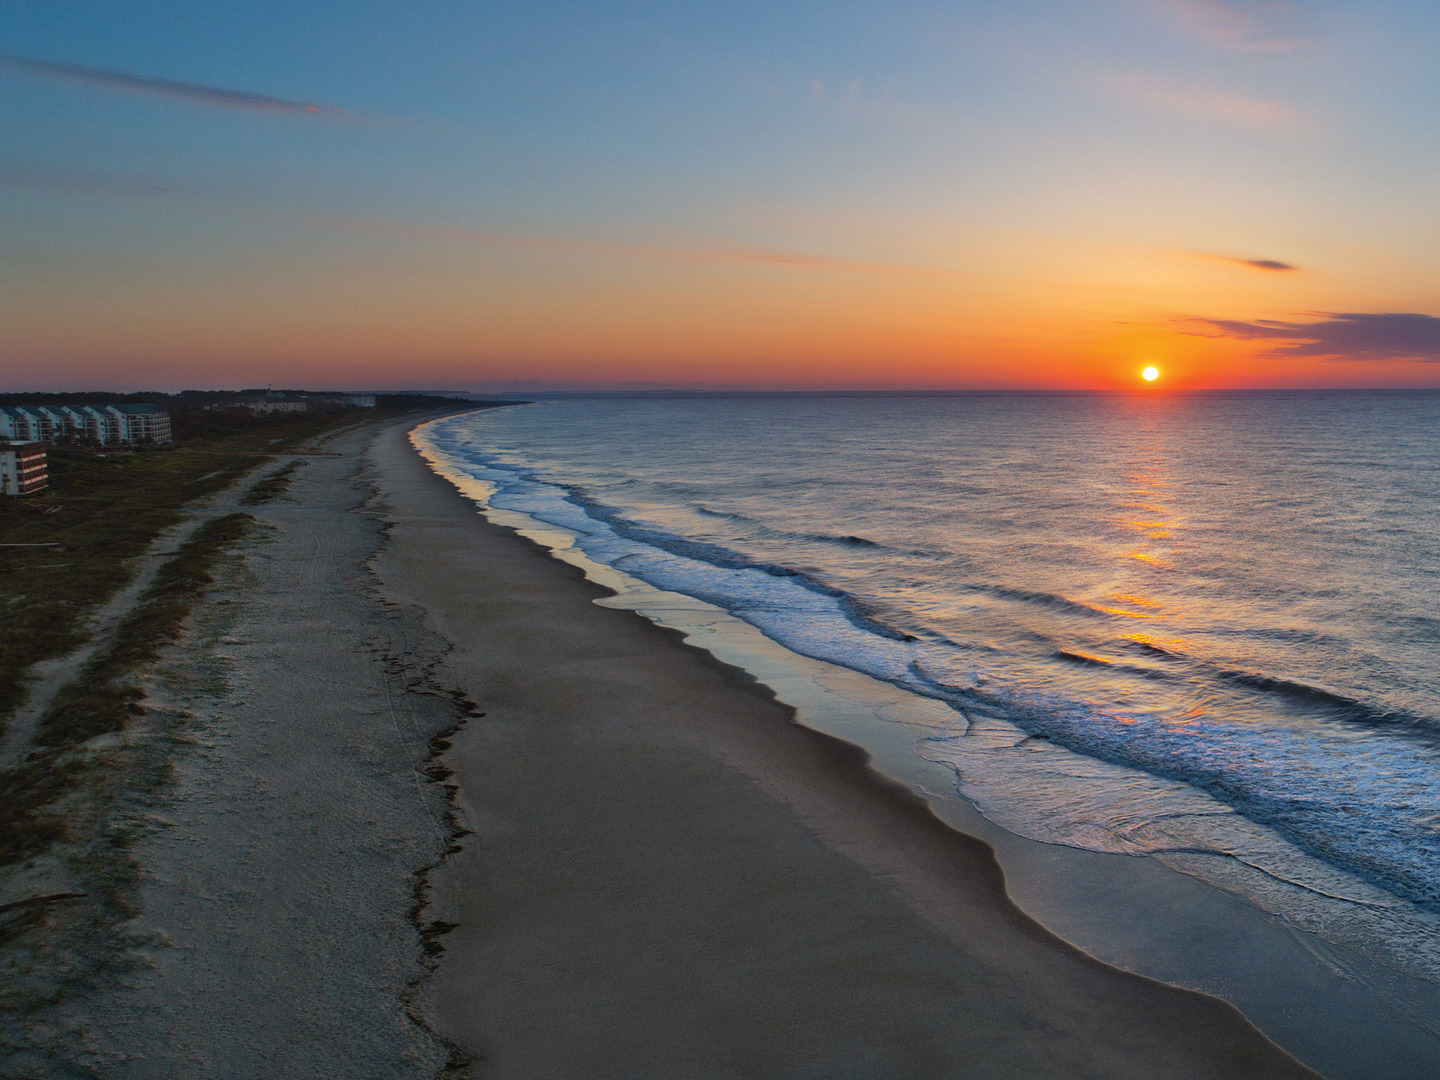 Marriott's SurfWatch<span class='trademark'>®</span> Sunset View from Beachfront. Marriott's SurfWatch<span class='trademark'>®</span> is located in Hilton Head Island, South Carolina United States.